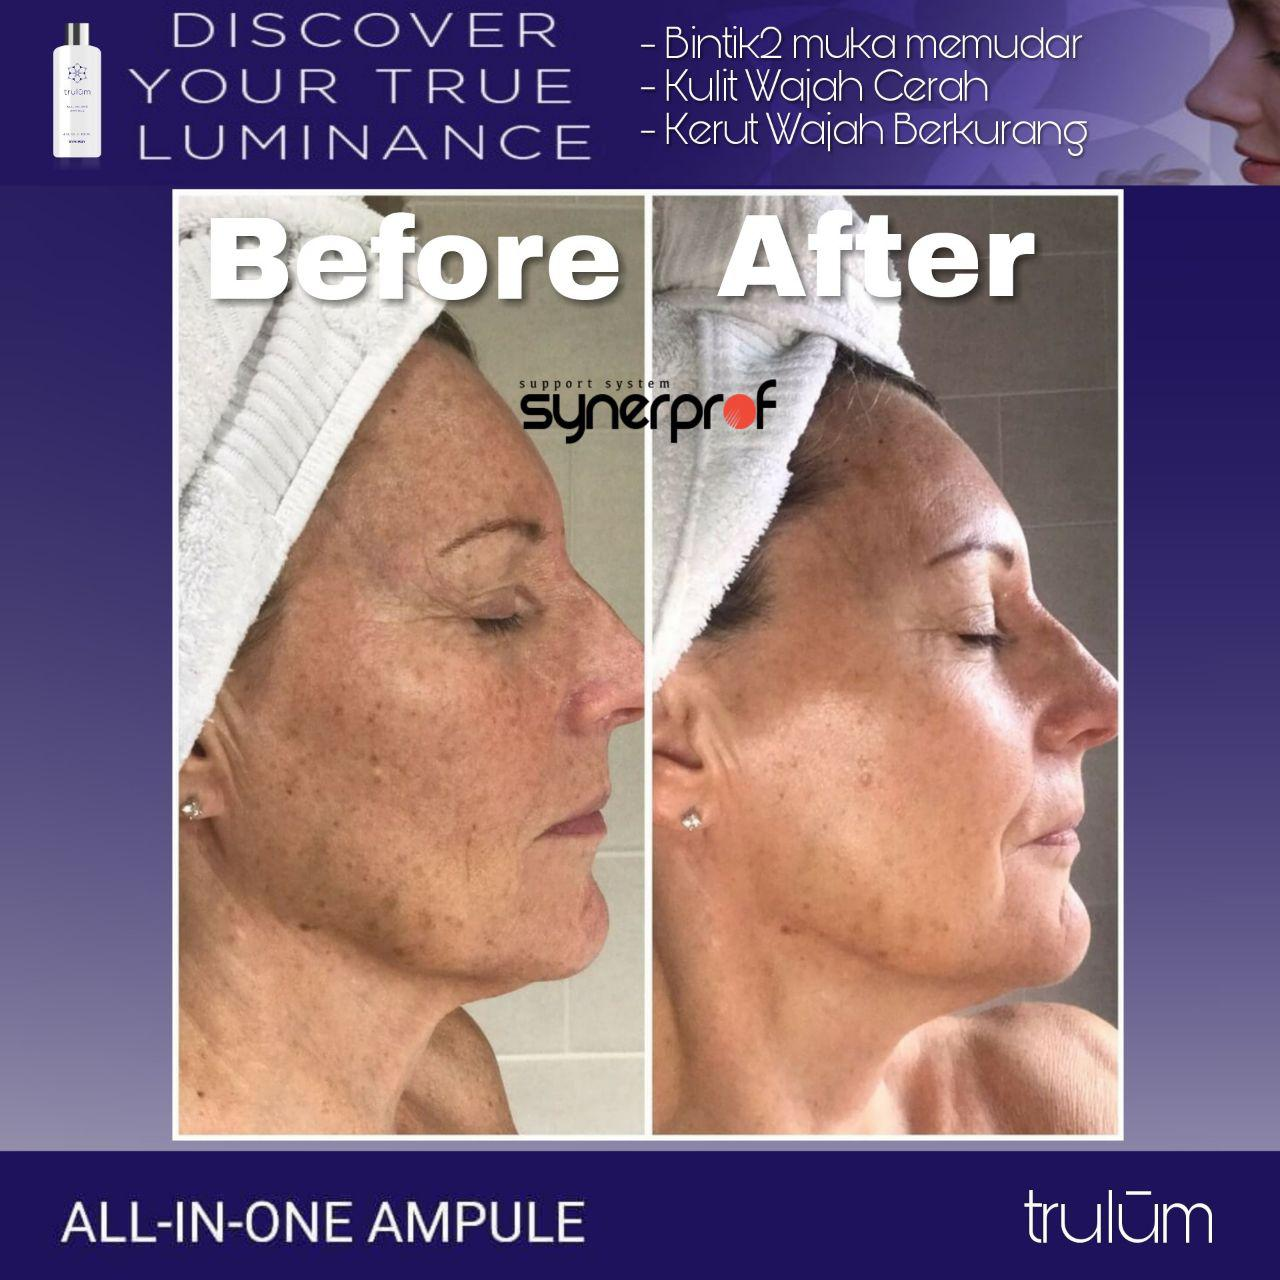 Klinik kecantikan Trulum All In One Ampoule Di Samosir